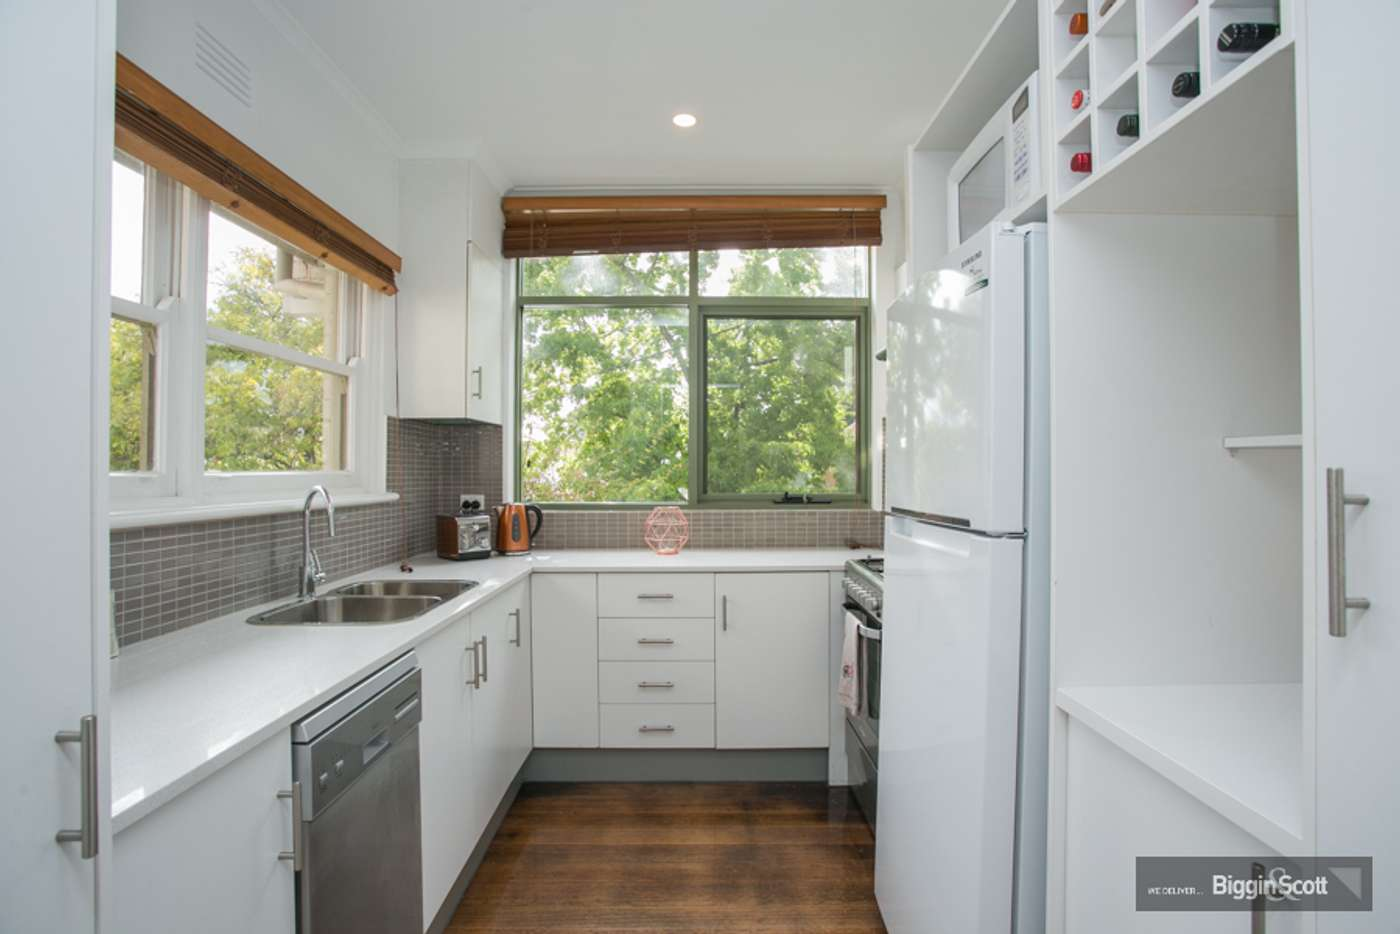 Main view of Homely apartment listing, 1/45 Armadale Street, Armadale VIC 3143